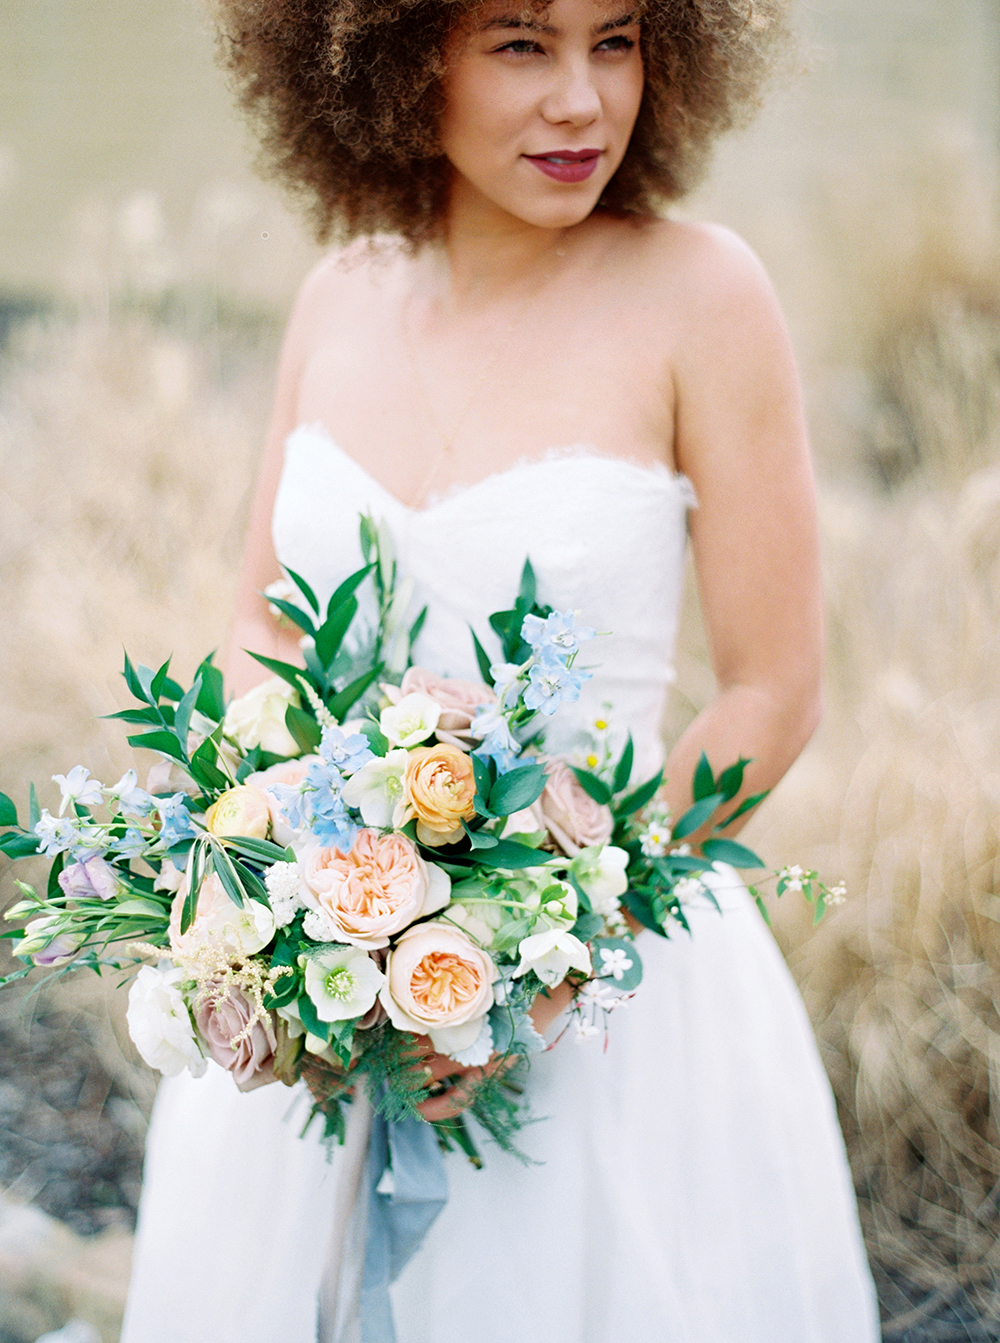 lush bridal bouquets - photo by Photos by Heart http://ruffledblog.com/downtown-birmingham-spring-wedding-inspiration